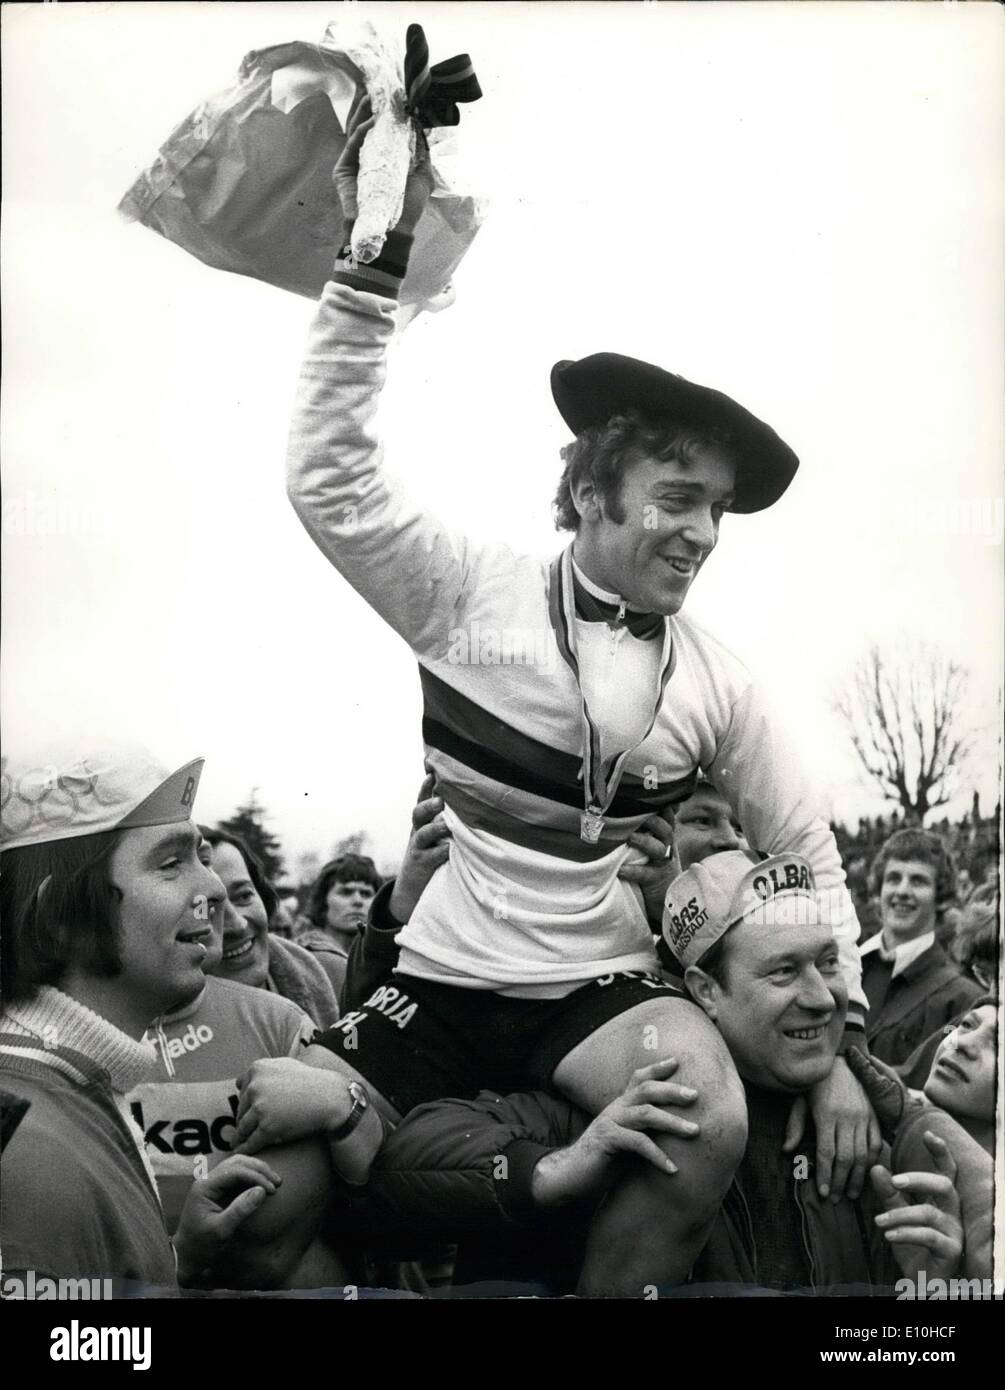 Feb. 02, 1973 - Peter Klaus Thaler of West Germany winner the world Amateur Cycle Cross Championship at Crystal Palace; Photo Shows Peter Klaus Thaler of West Germany being chaired after winning the Amateur World Championship Cycle Cross title at Crystal Palace today. - Stock Image